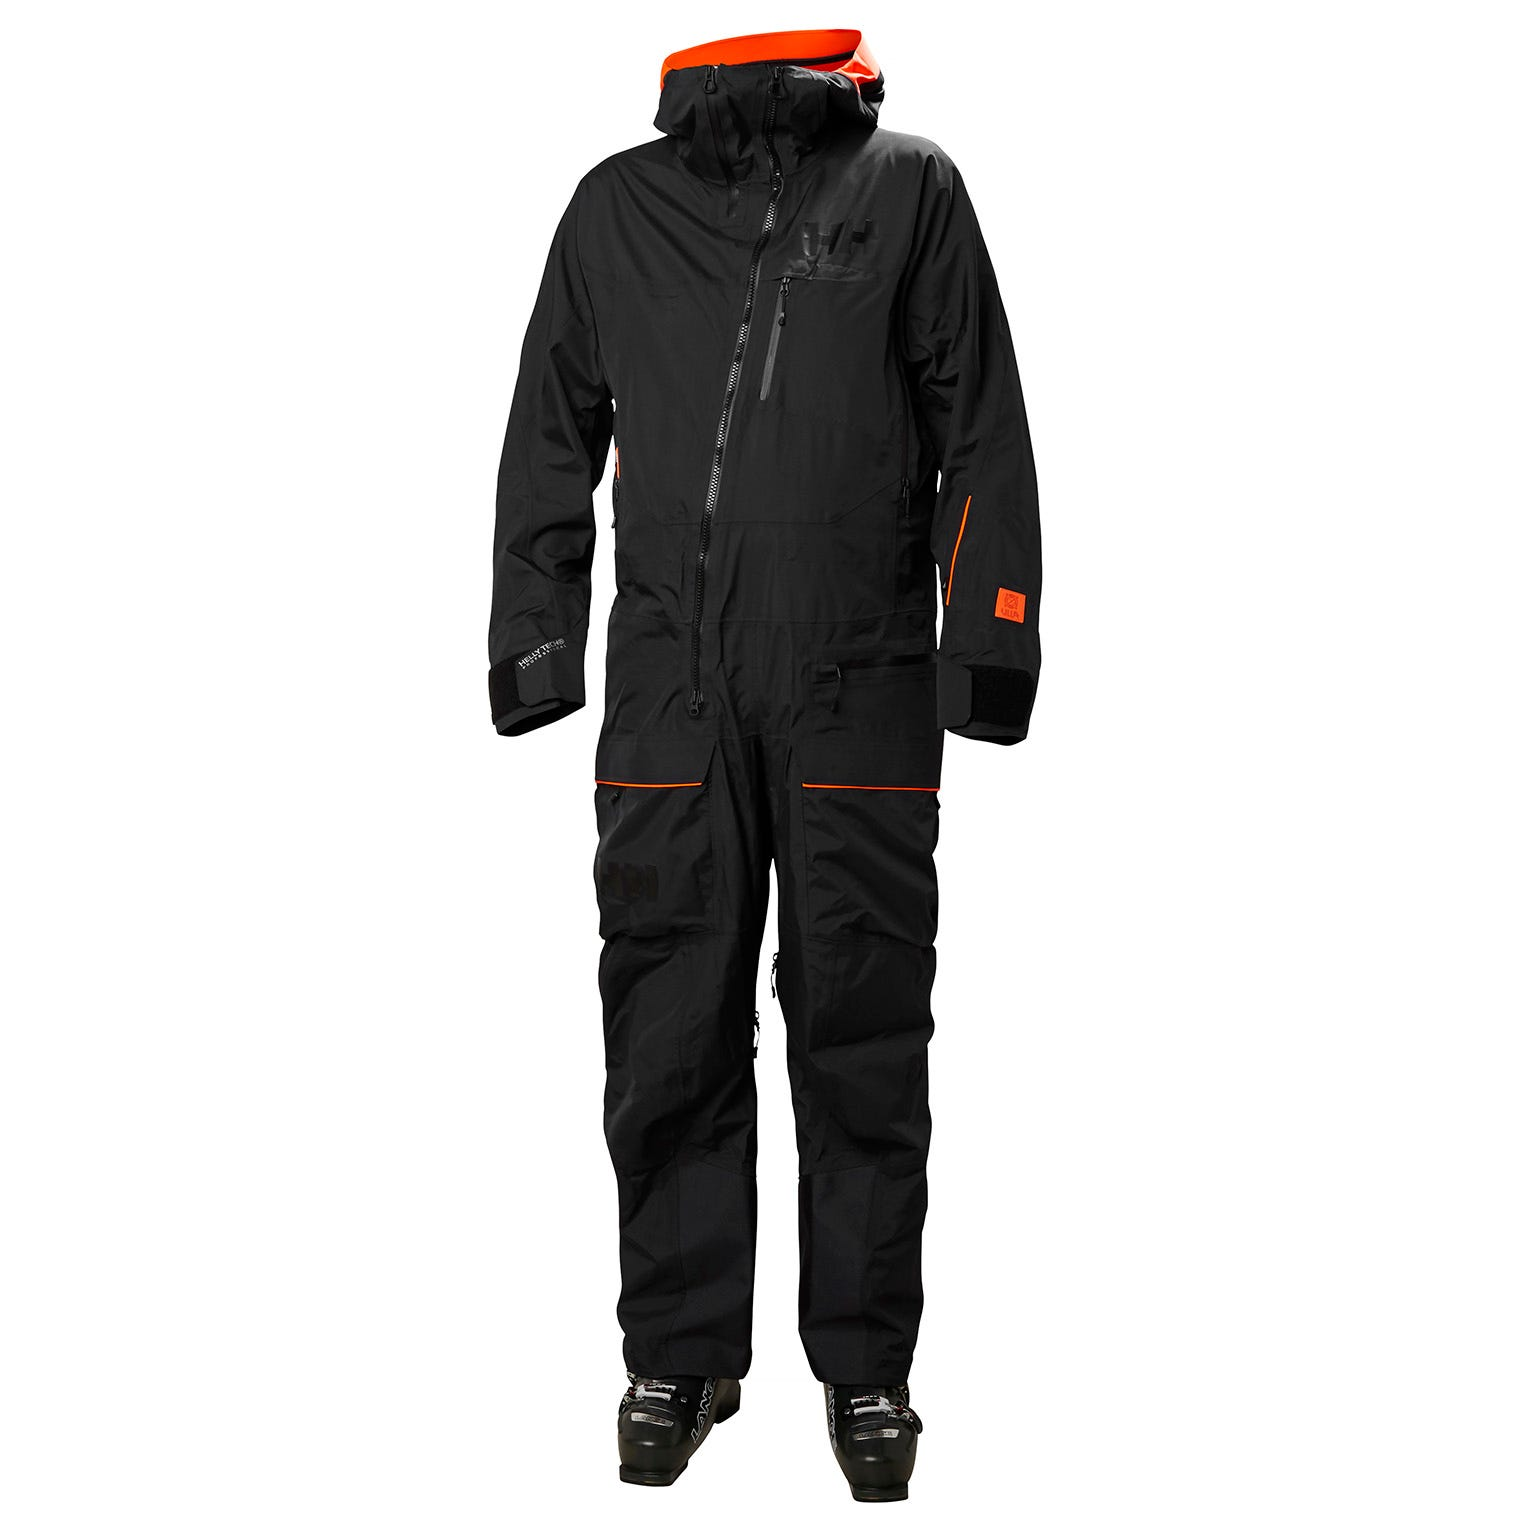 Helly Hansen Mens Ullr Powder Ski Suit Shell Trouser Black M